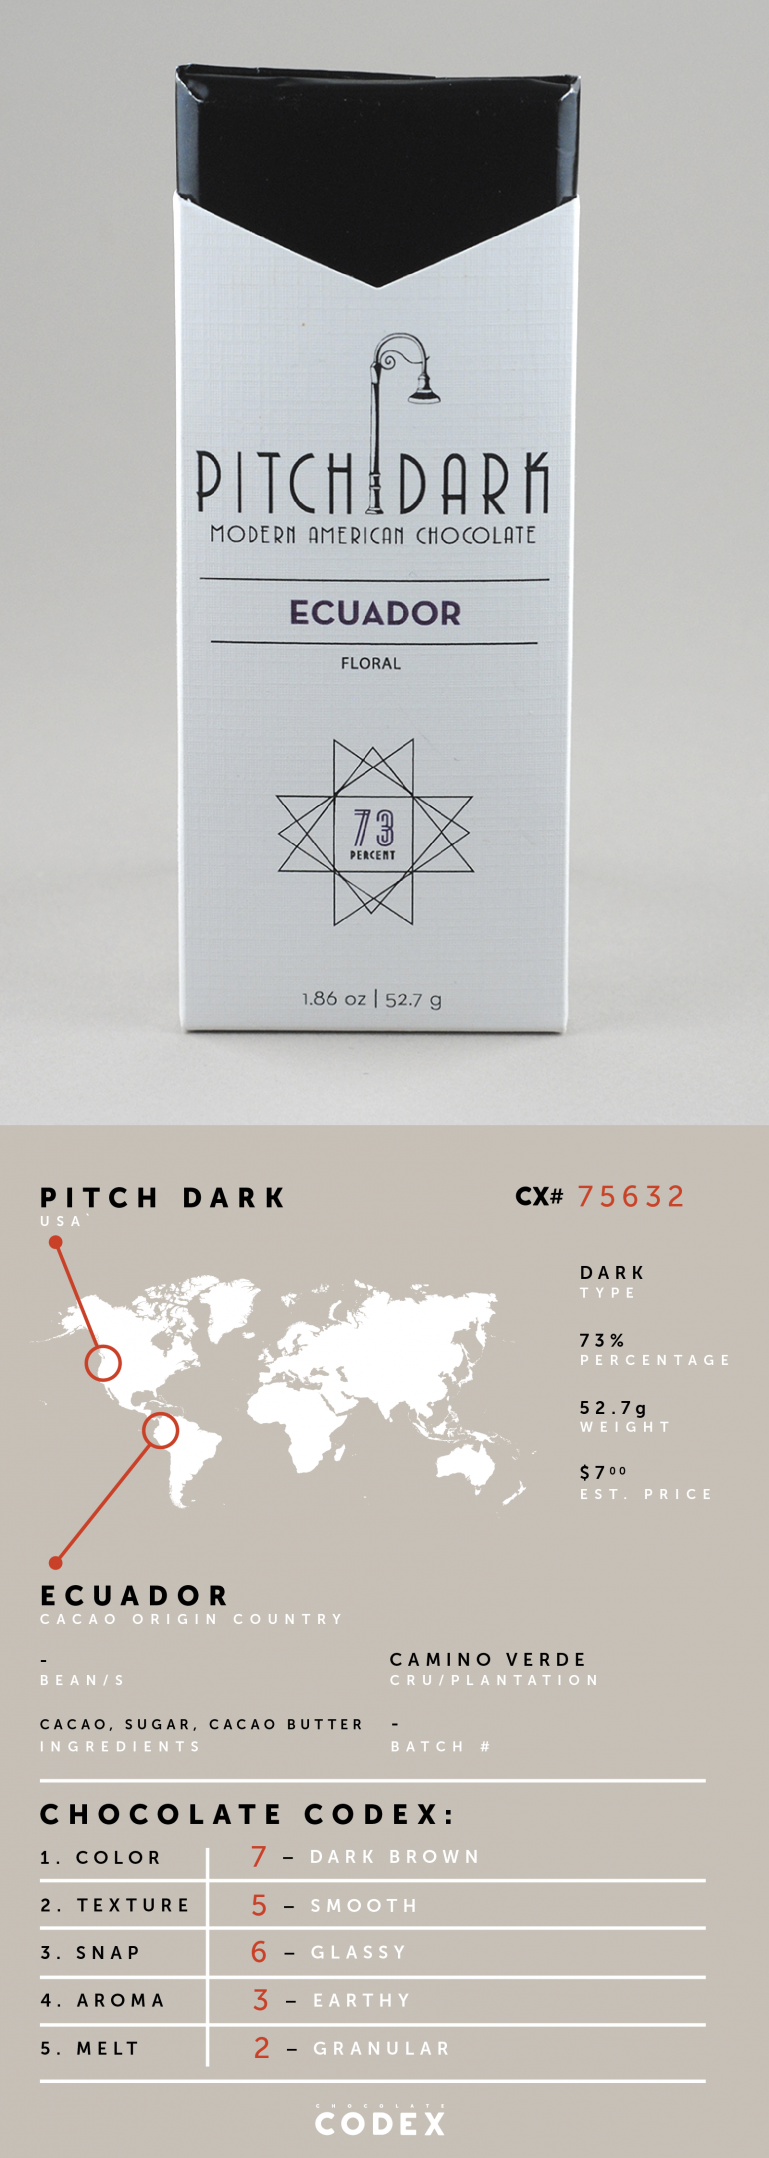 Chocolate-Codex-Reviews-Pitch-Dark-Ecuador-73%